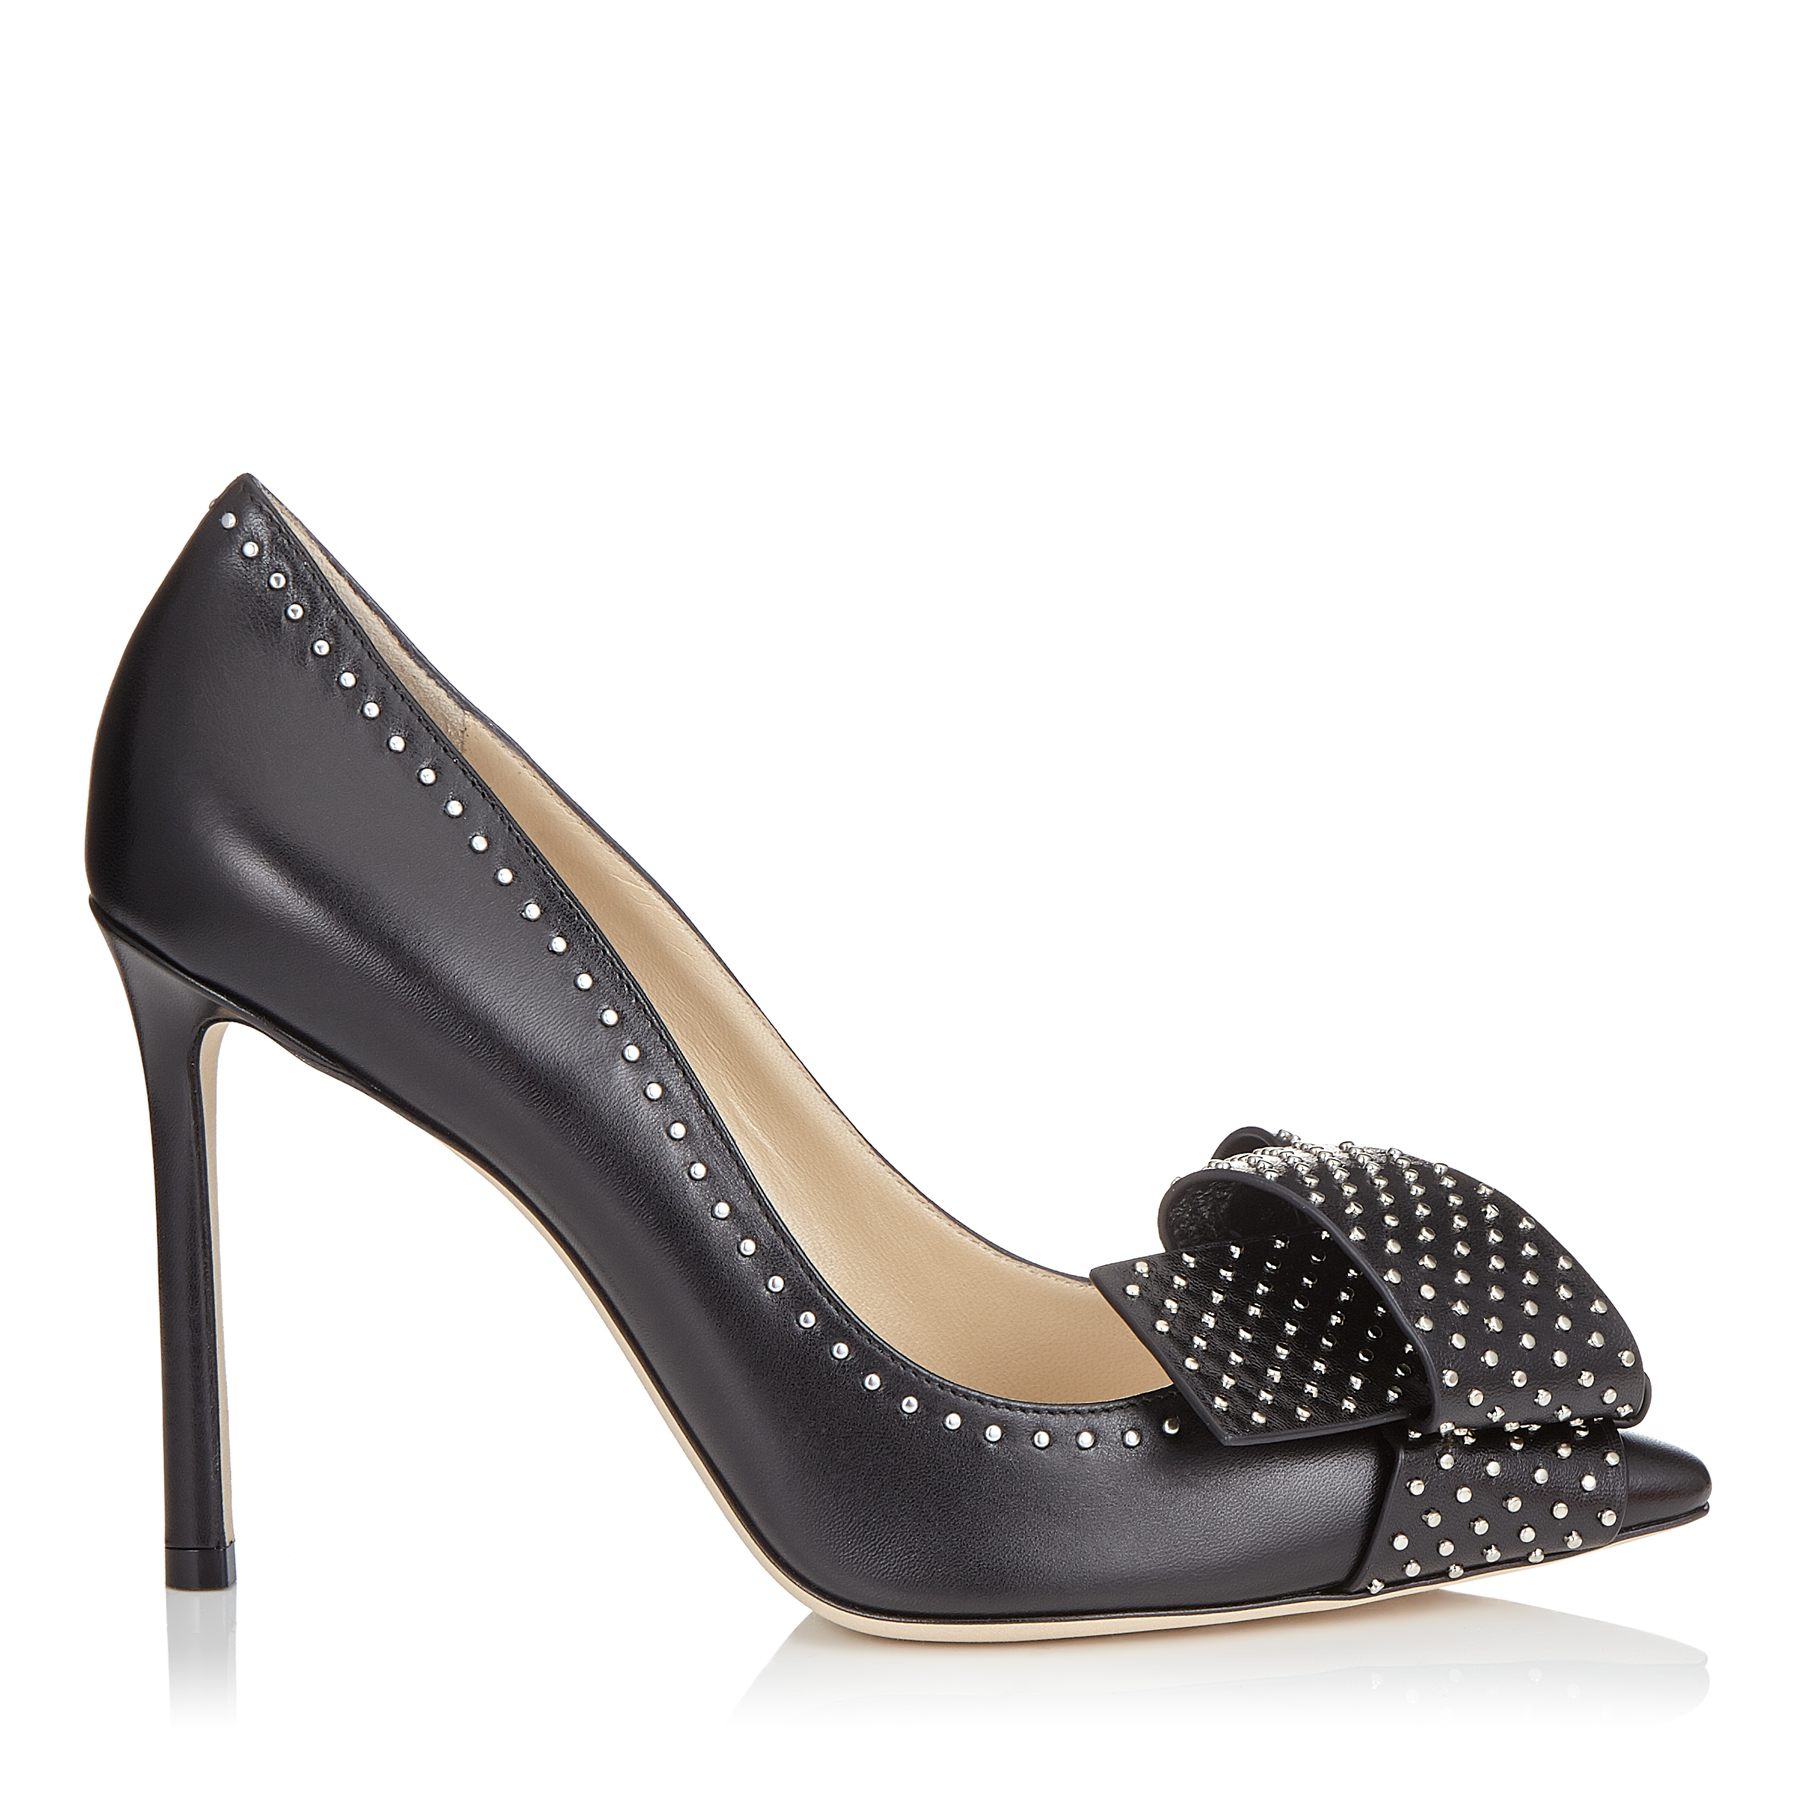 TEGAN 100 Black Kid Leather Pointy Toe Pumps with Studded Bow Detailing by Jimmy Choo